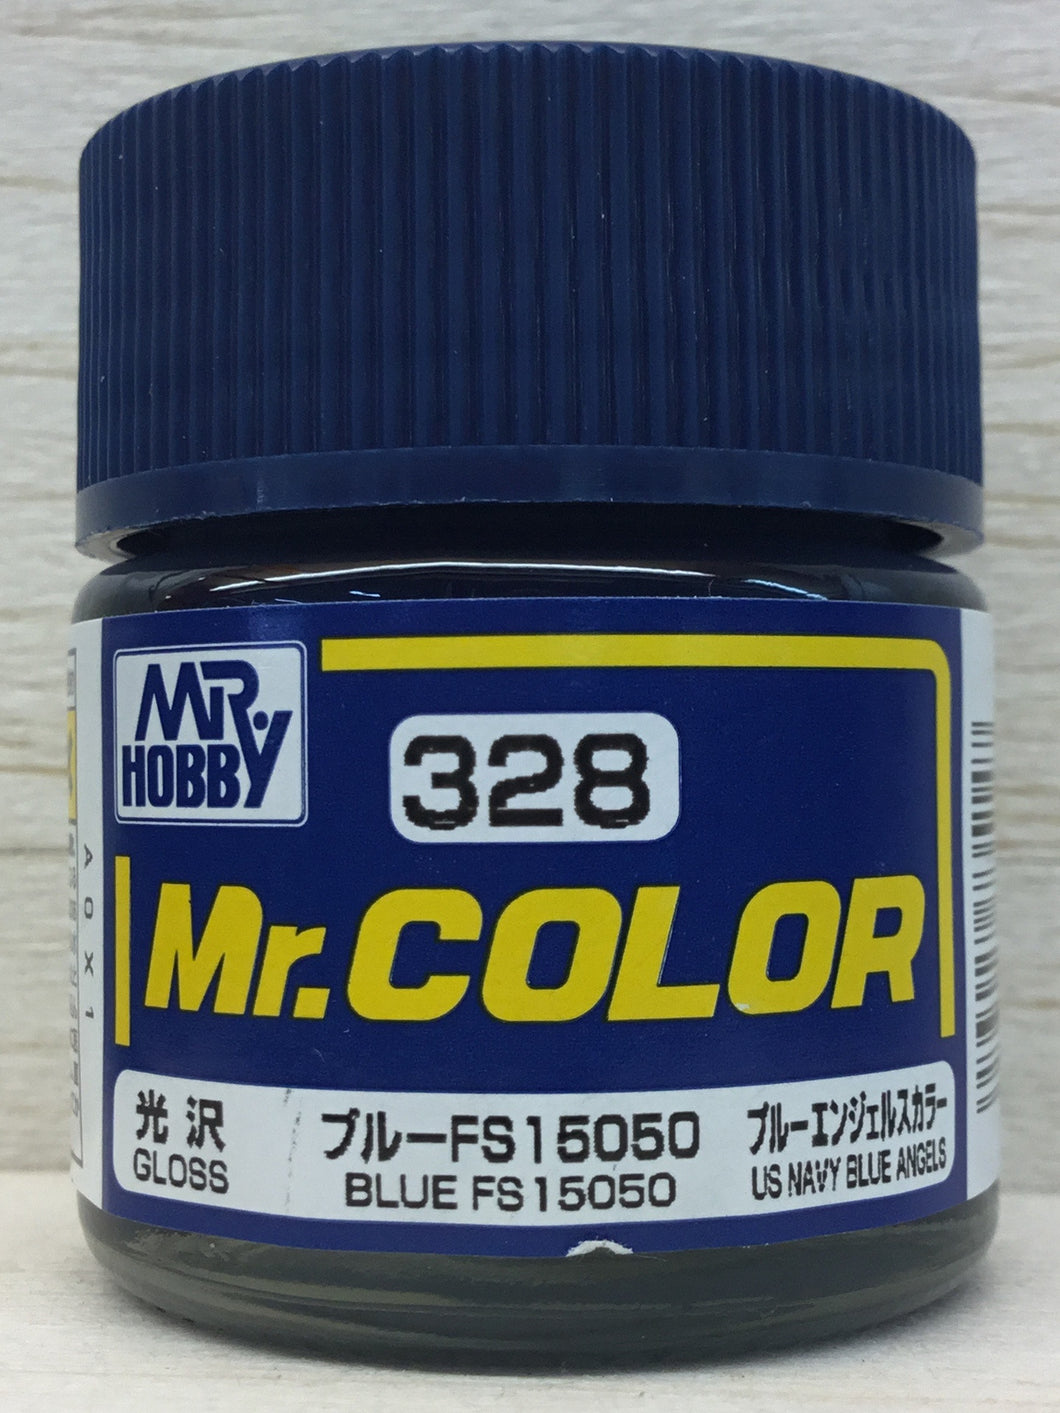 GUNZE MR COLOR C328 GLOSS BLUE FS15050